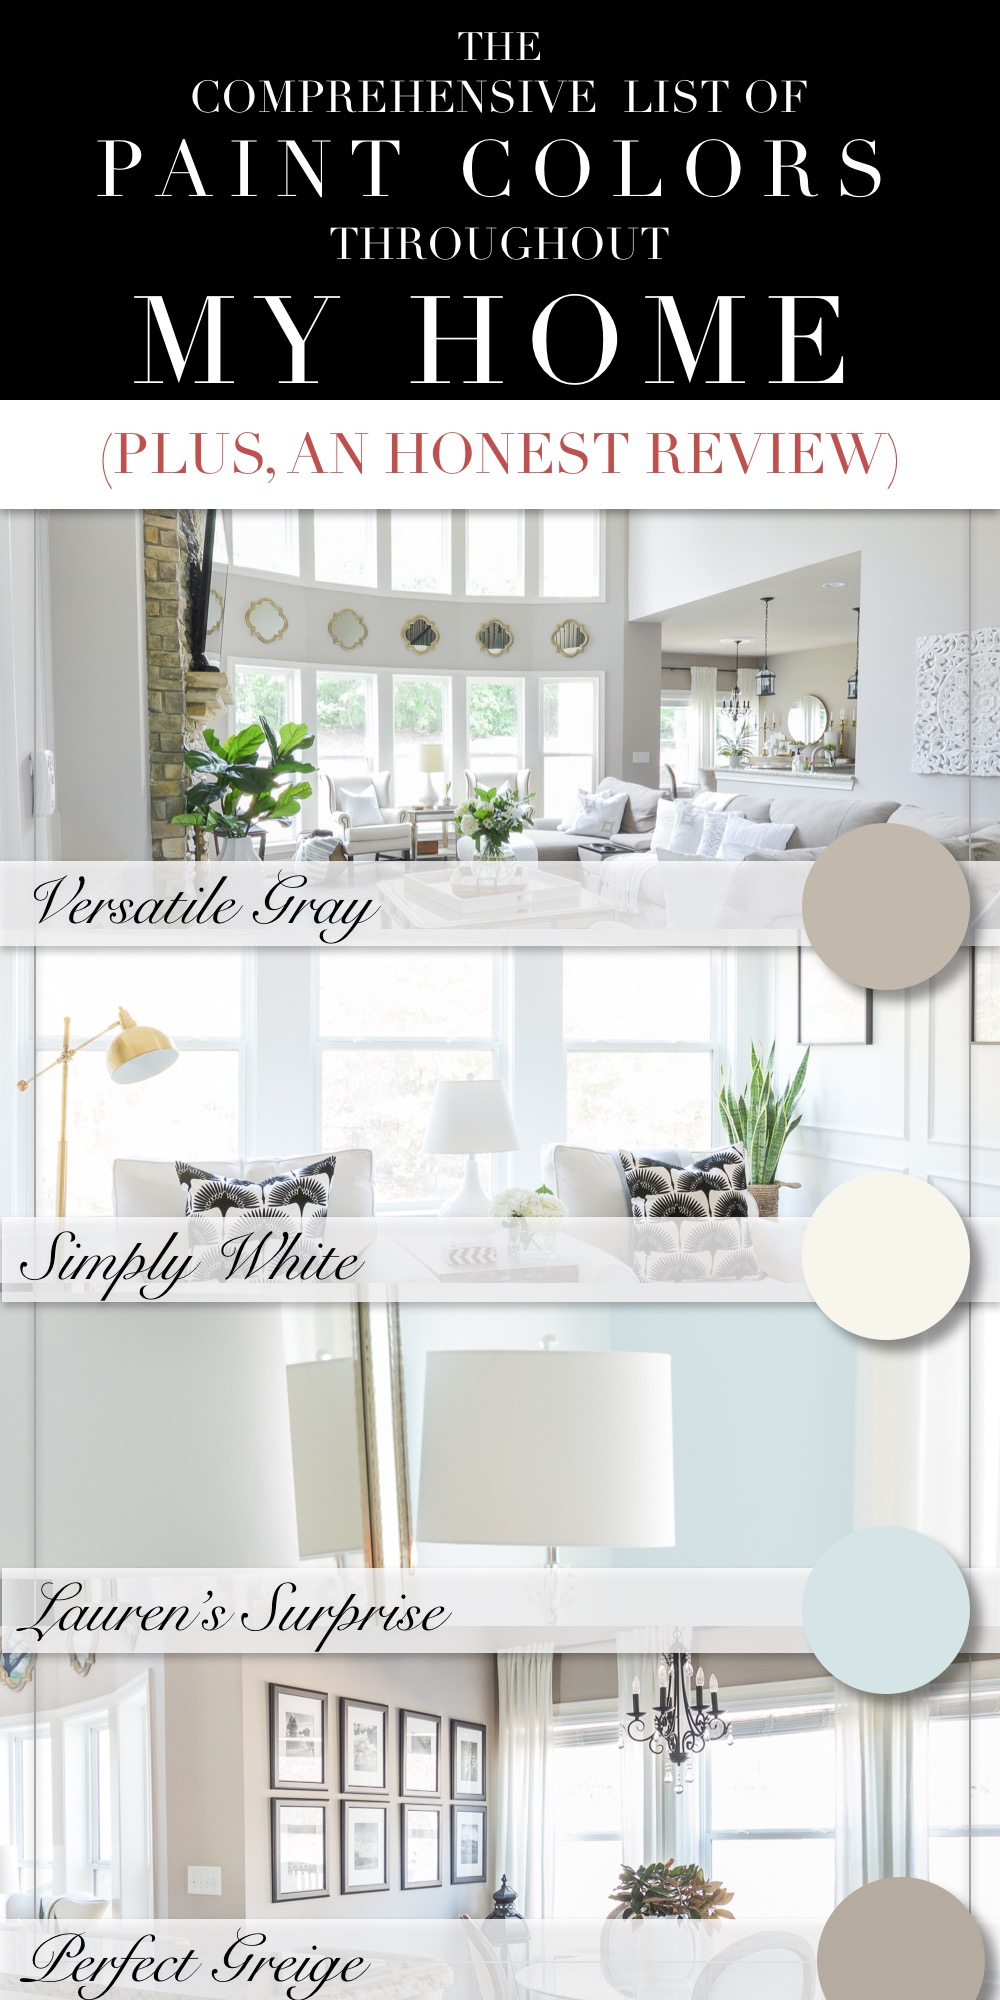 Favorite Neutral Paint Colors for a Cohesive Home with Blue, Greige, Gray, and White from Benjamin Moore and Sherwin Williams